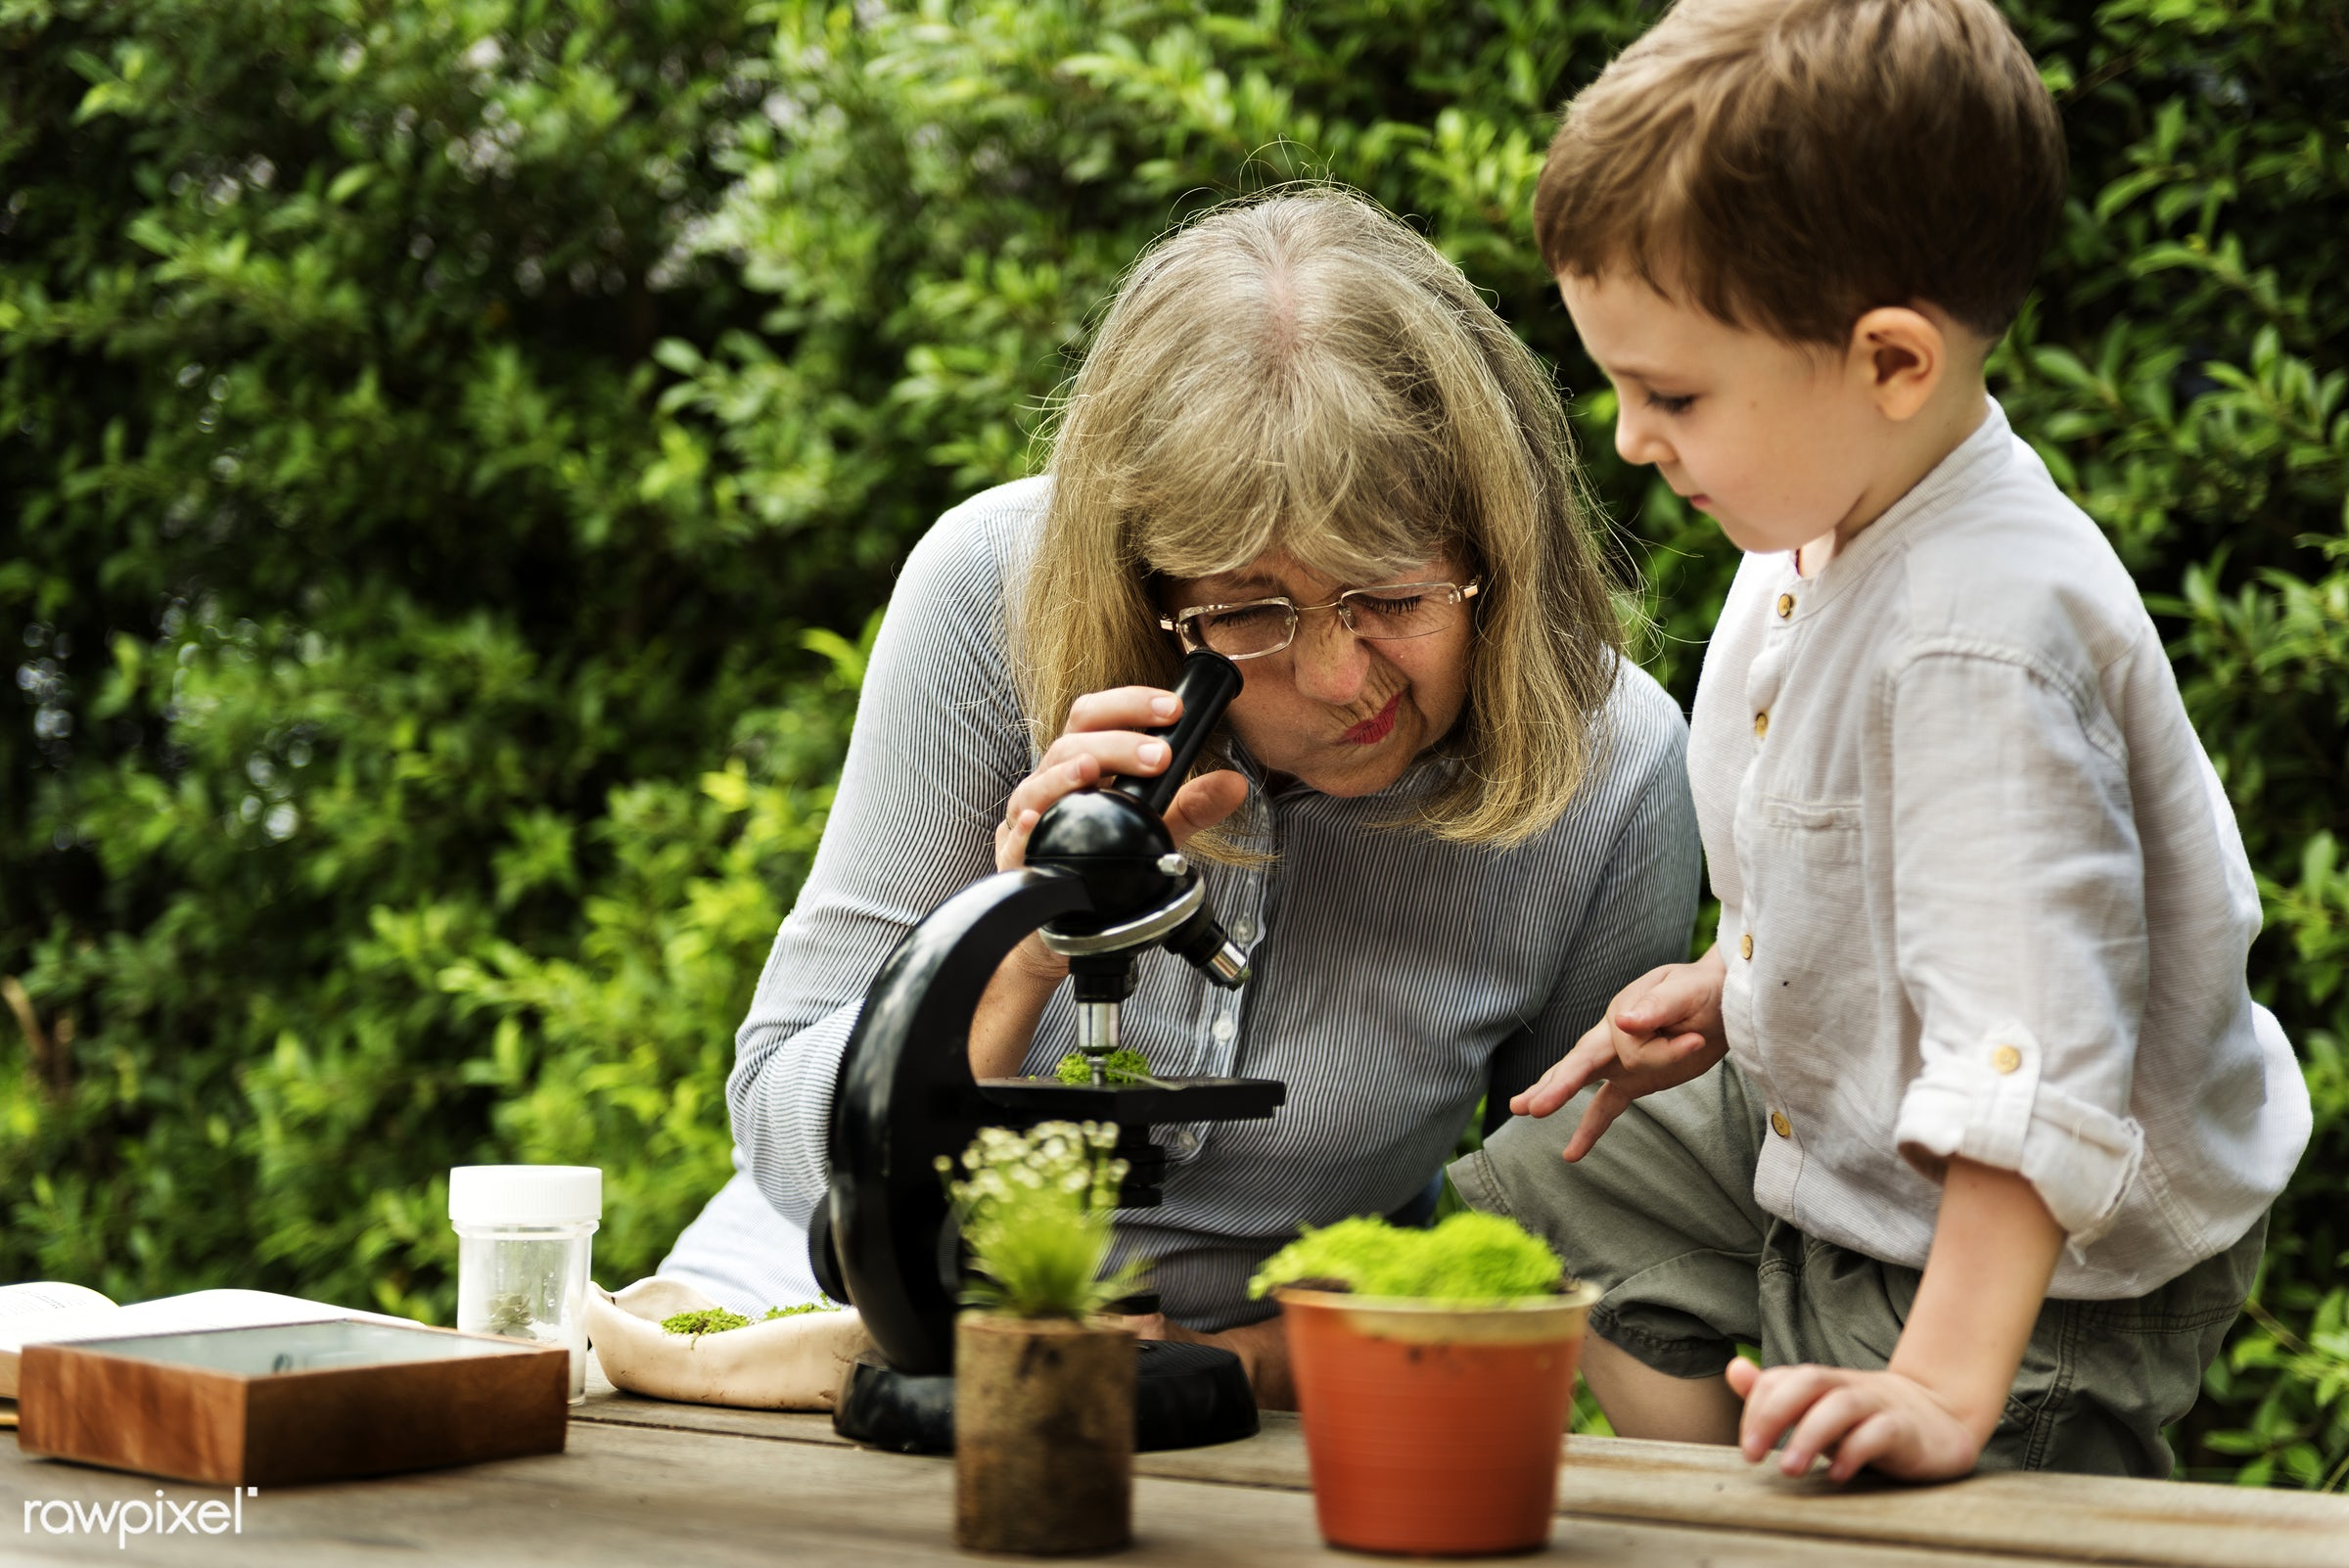 plant, positivity, kid, microscope, science, child, life, micro, lifestyle, experiment, pottery, smile, positive, grandson,...